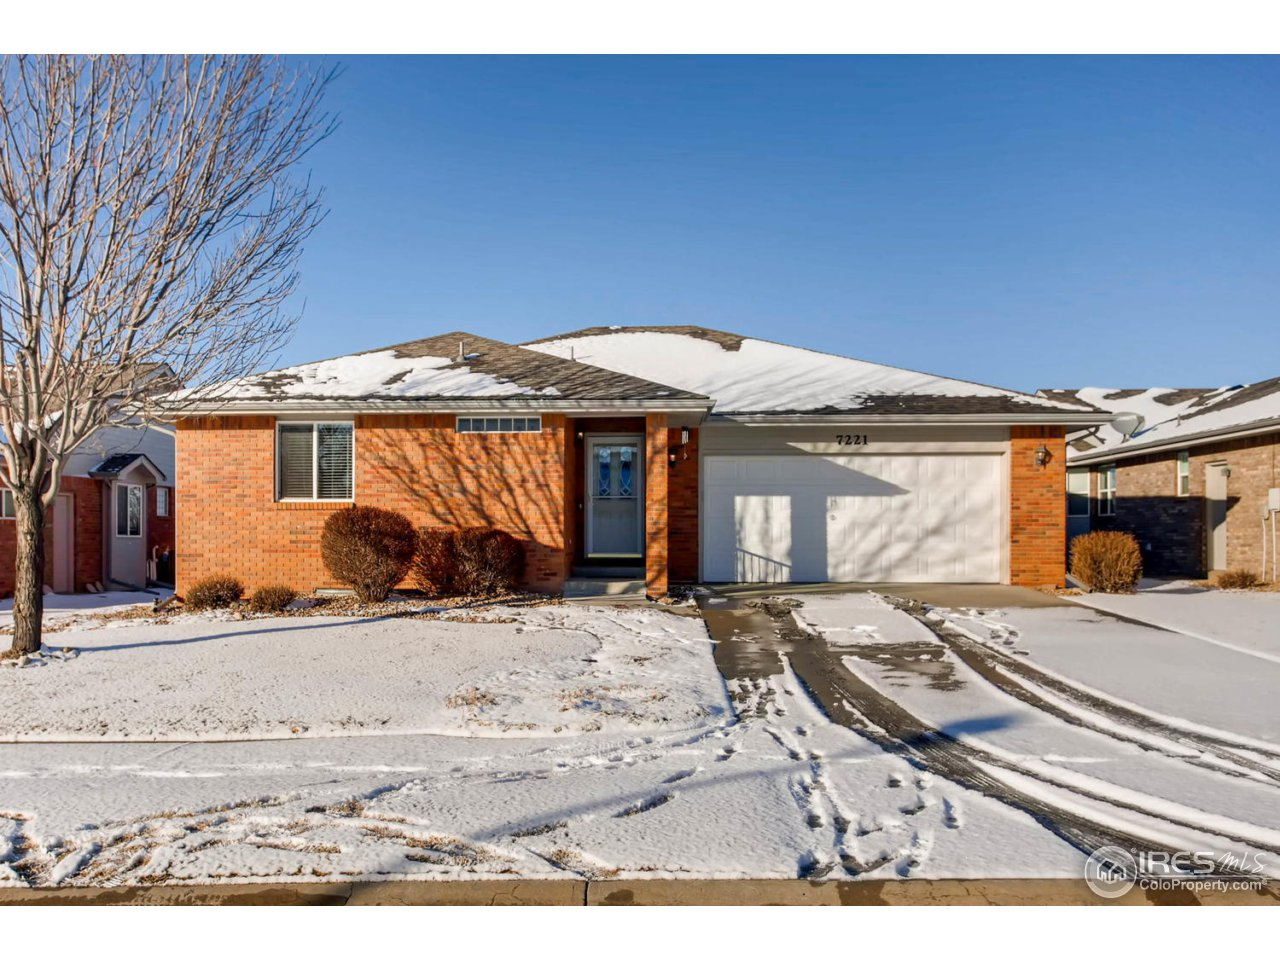 7221 18th St, Greeley CO 80634